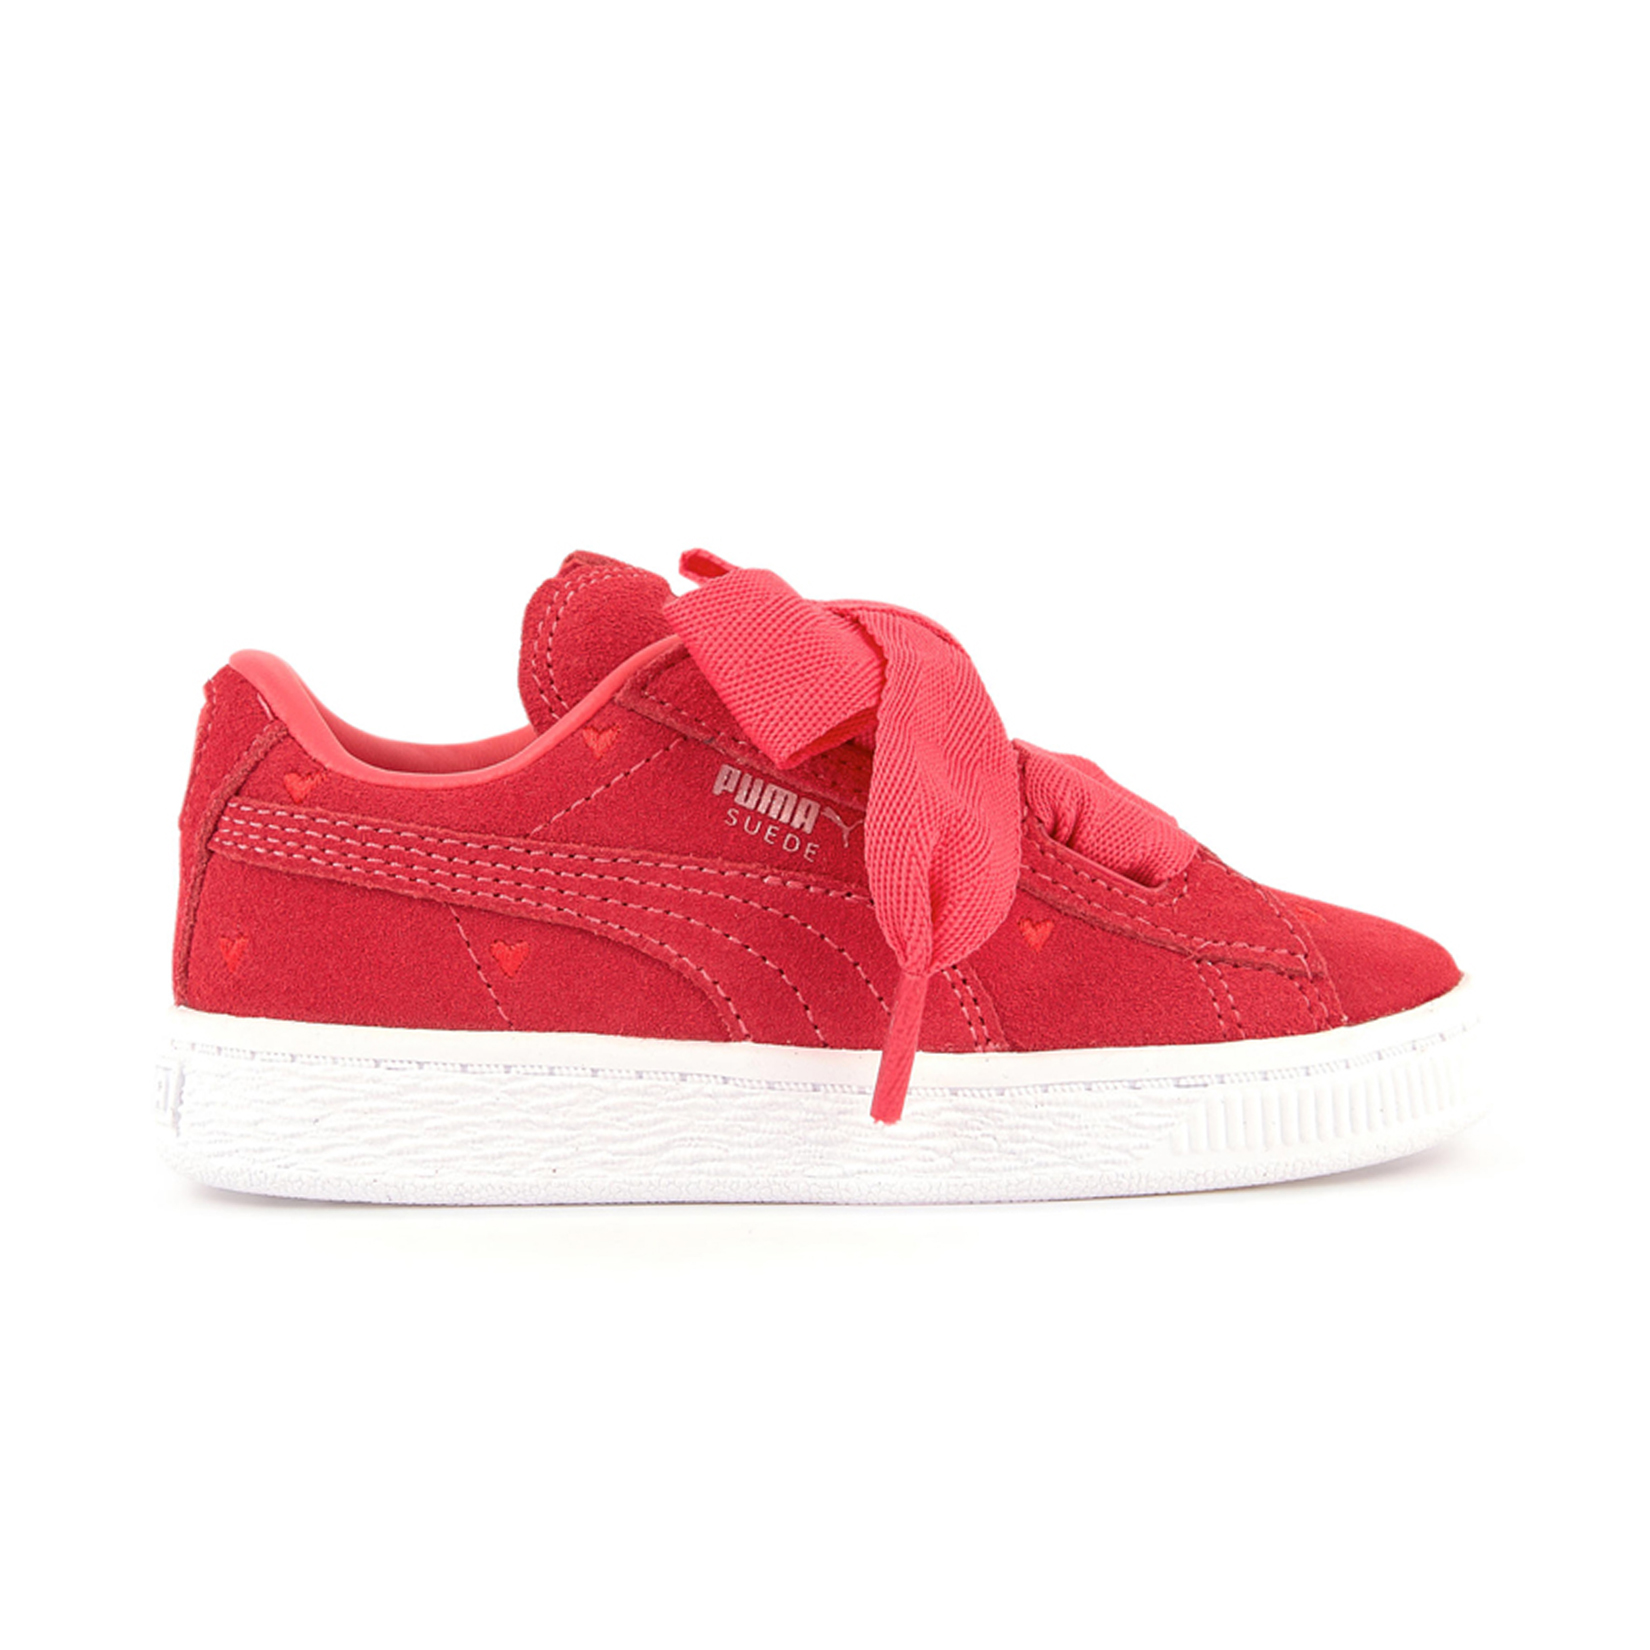 first rate 8b6d1 e5a8d Women's Shoes Puma Suede Heart Valentine Paradise Pink | All ...